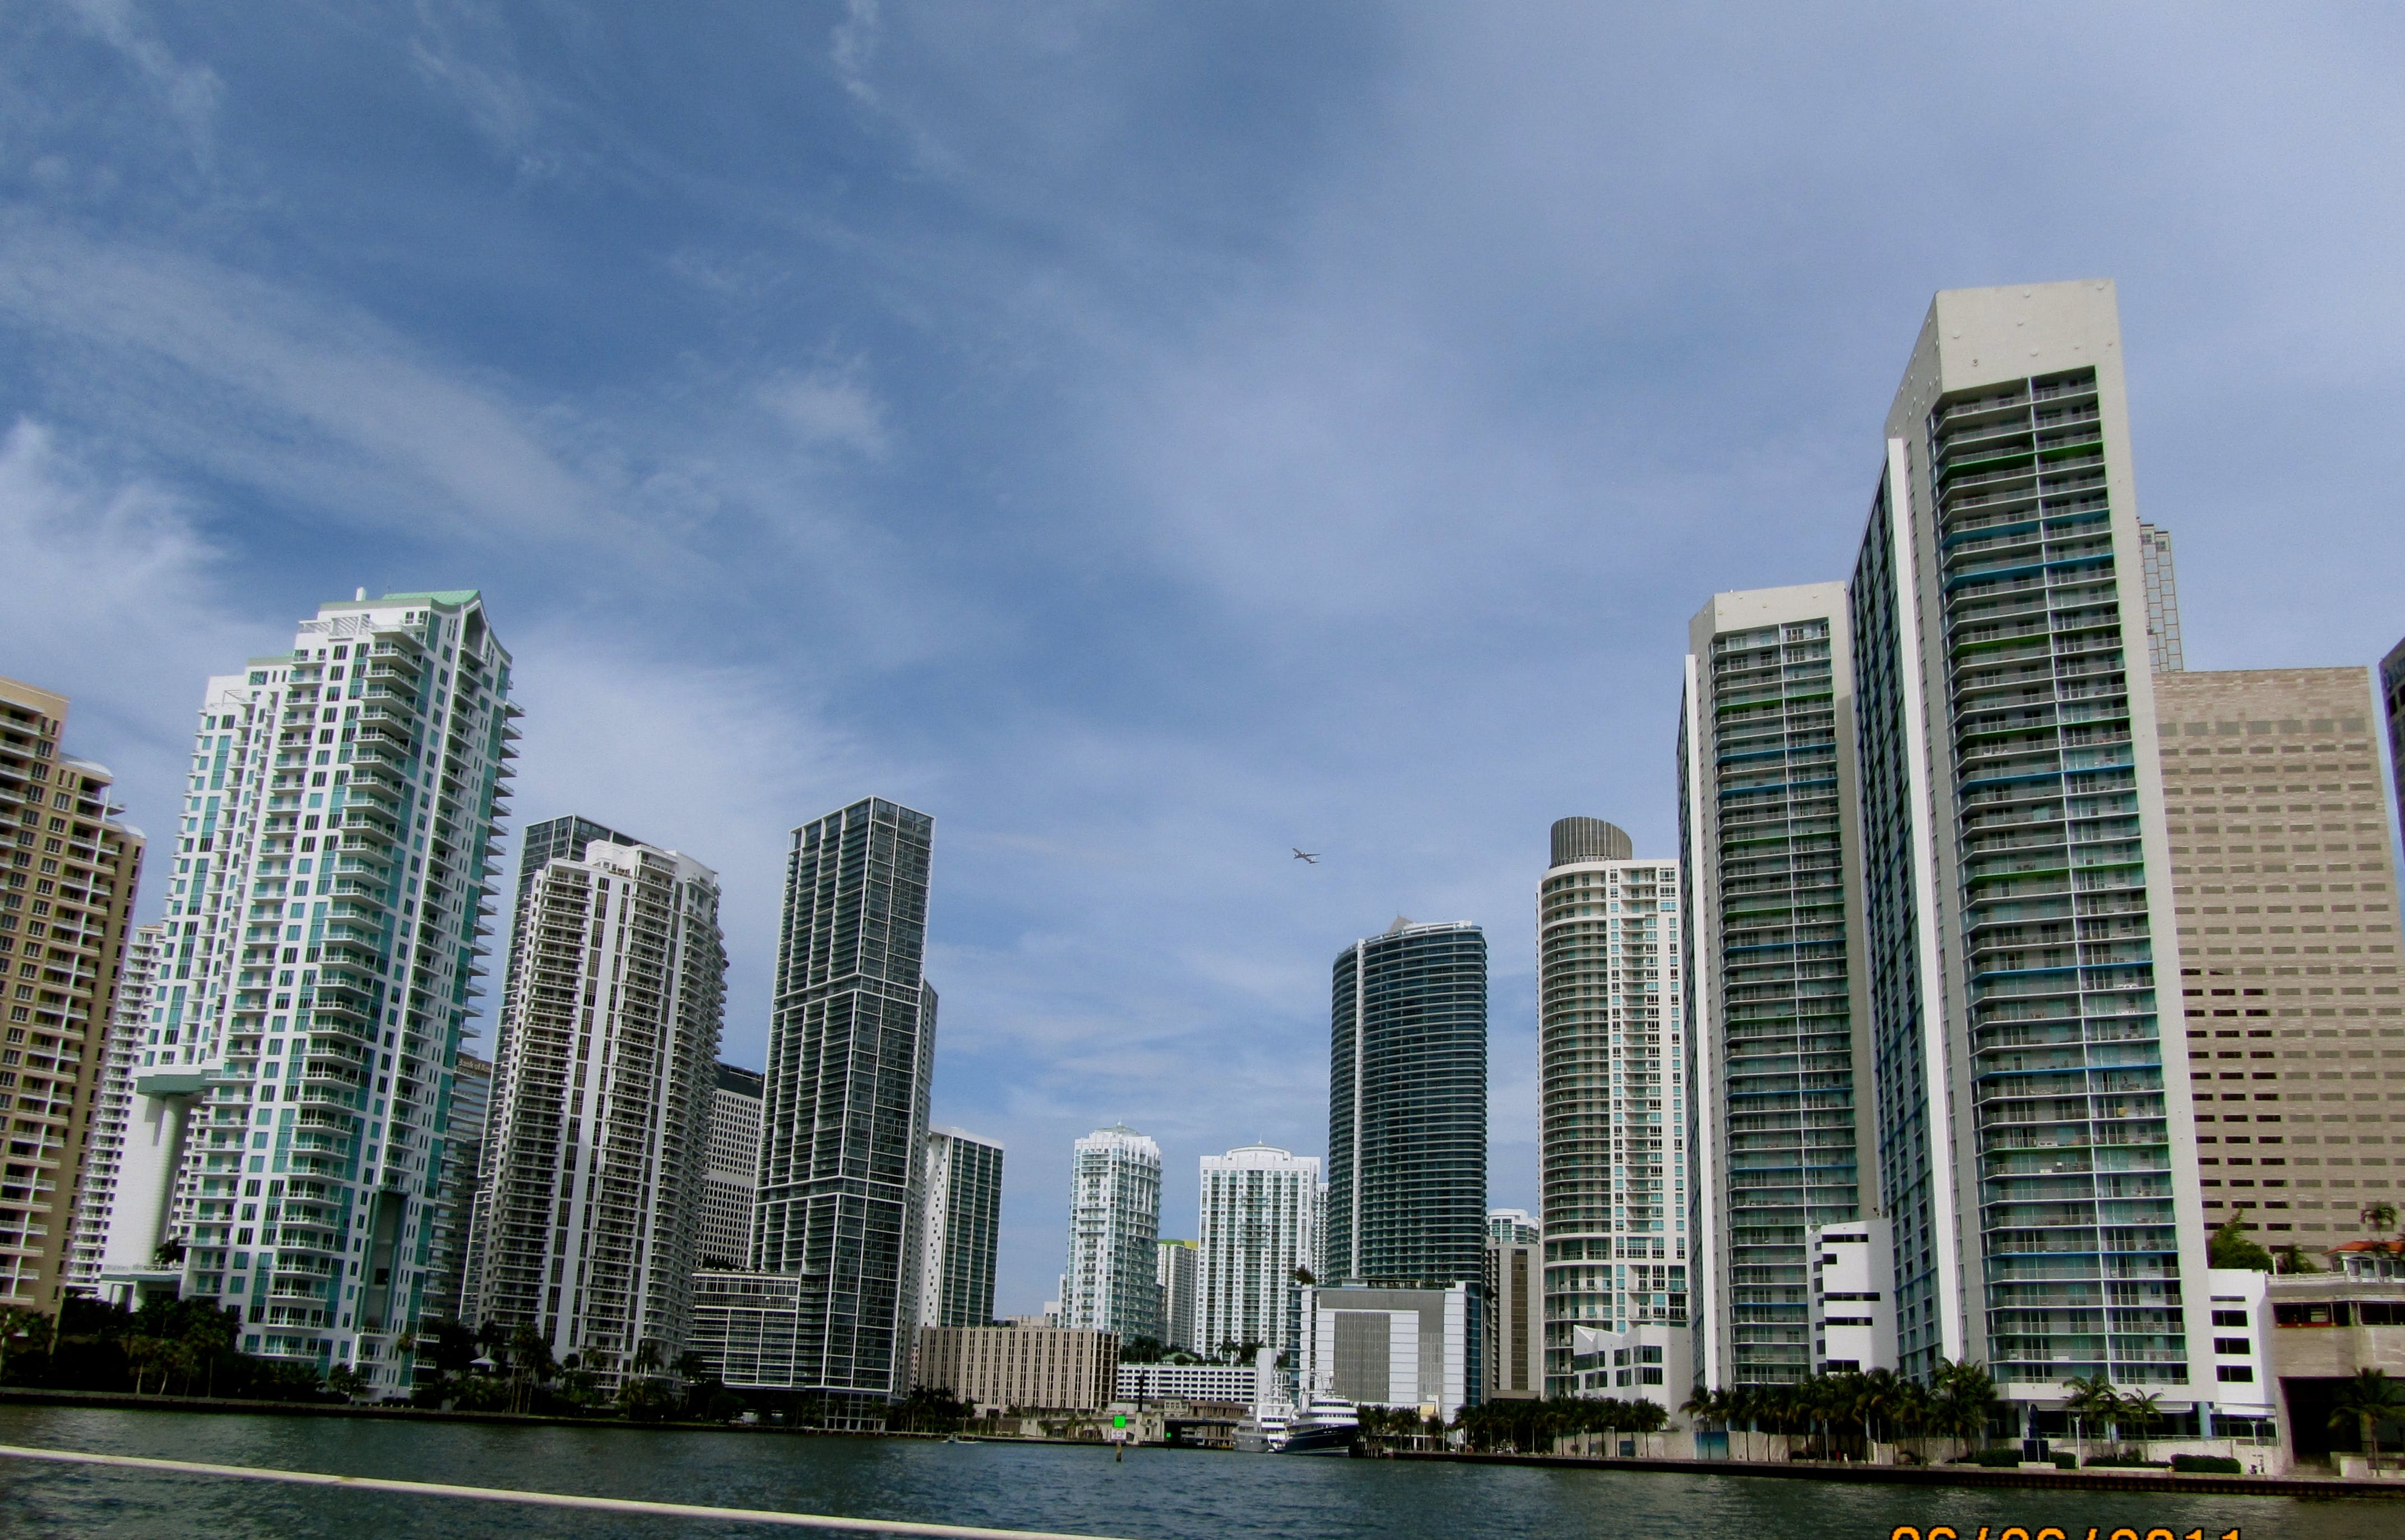 Free stock photo of bay view, bayfront, building exterior, buildings